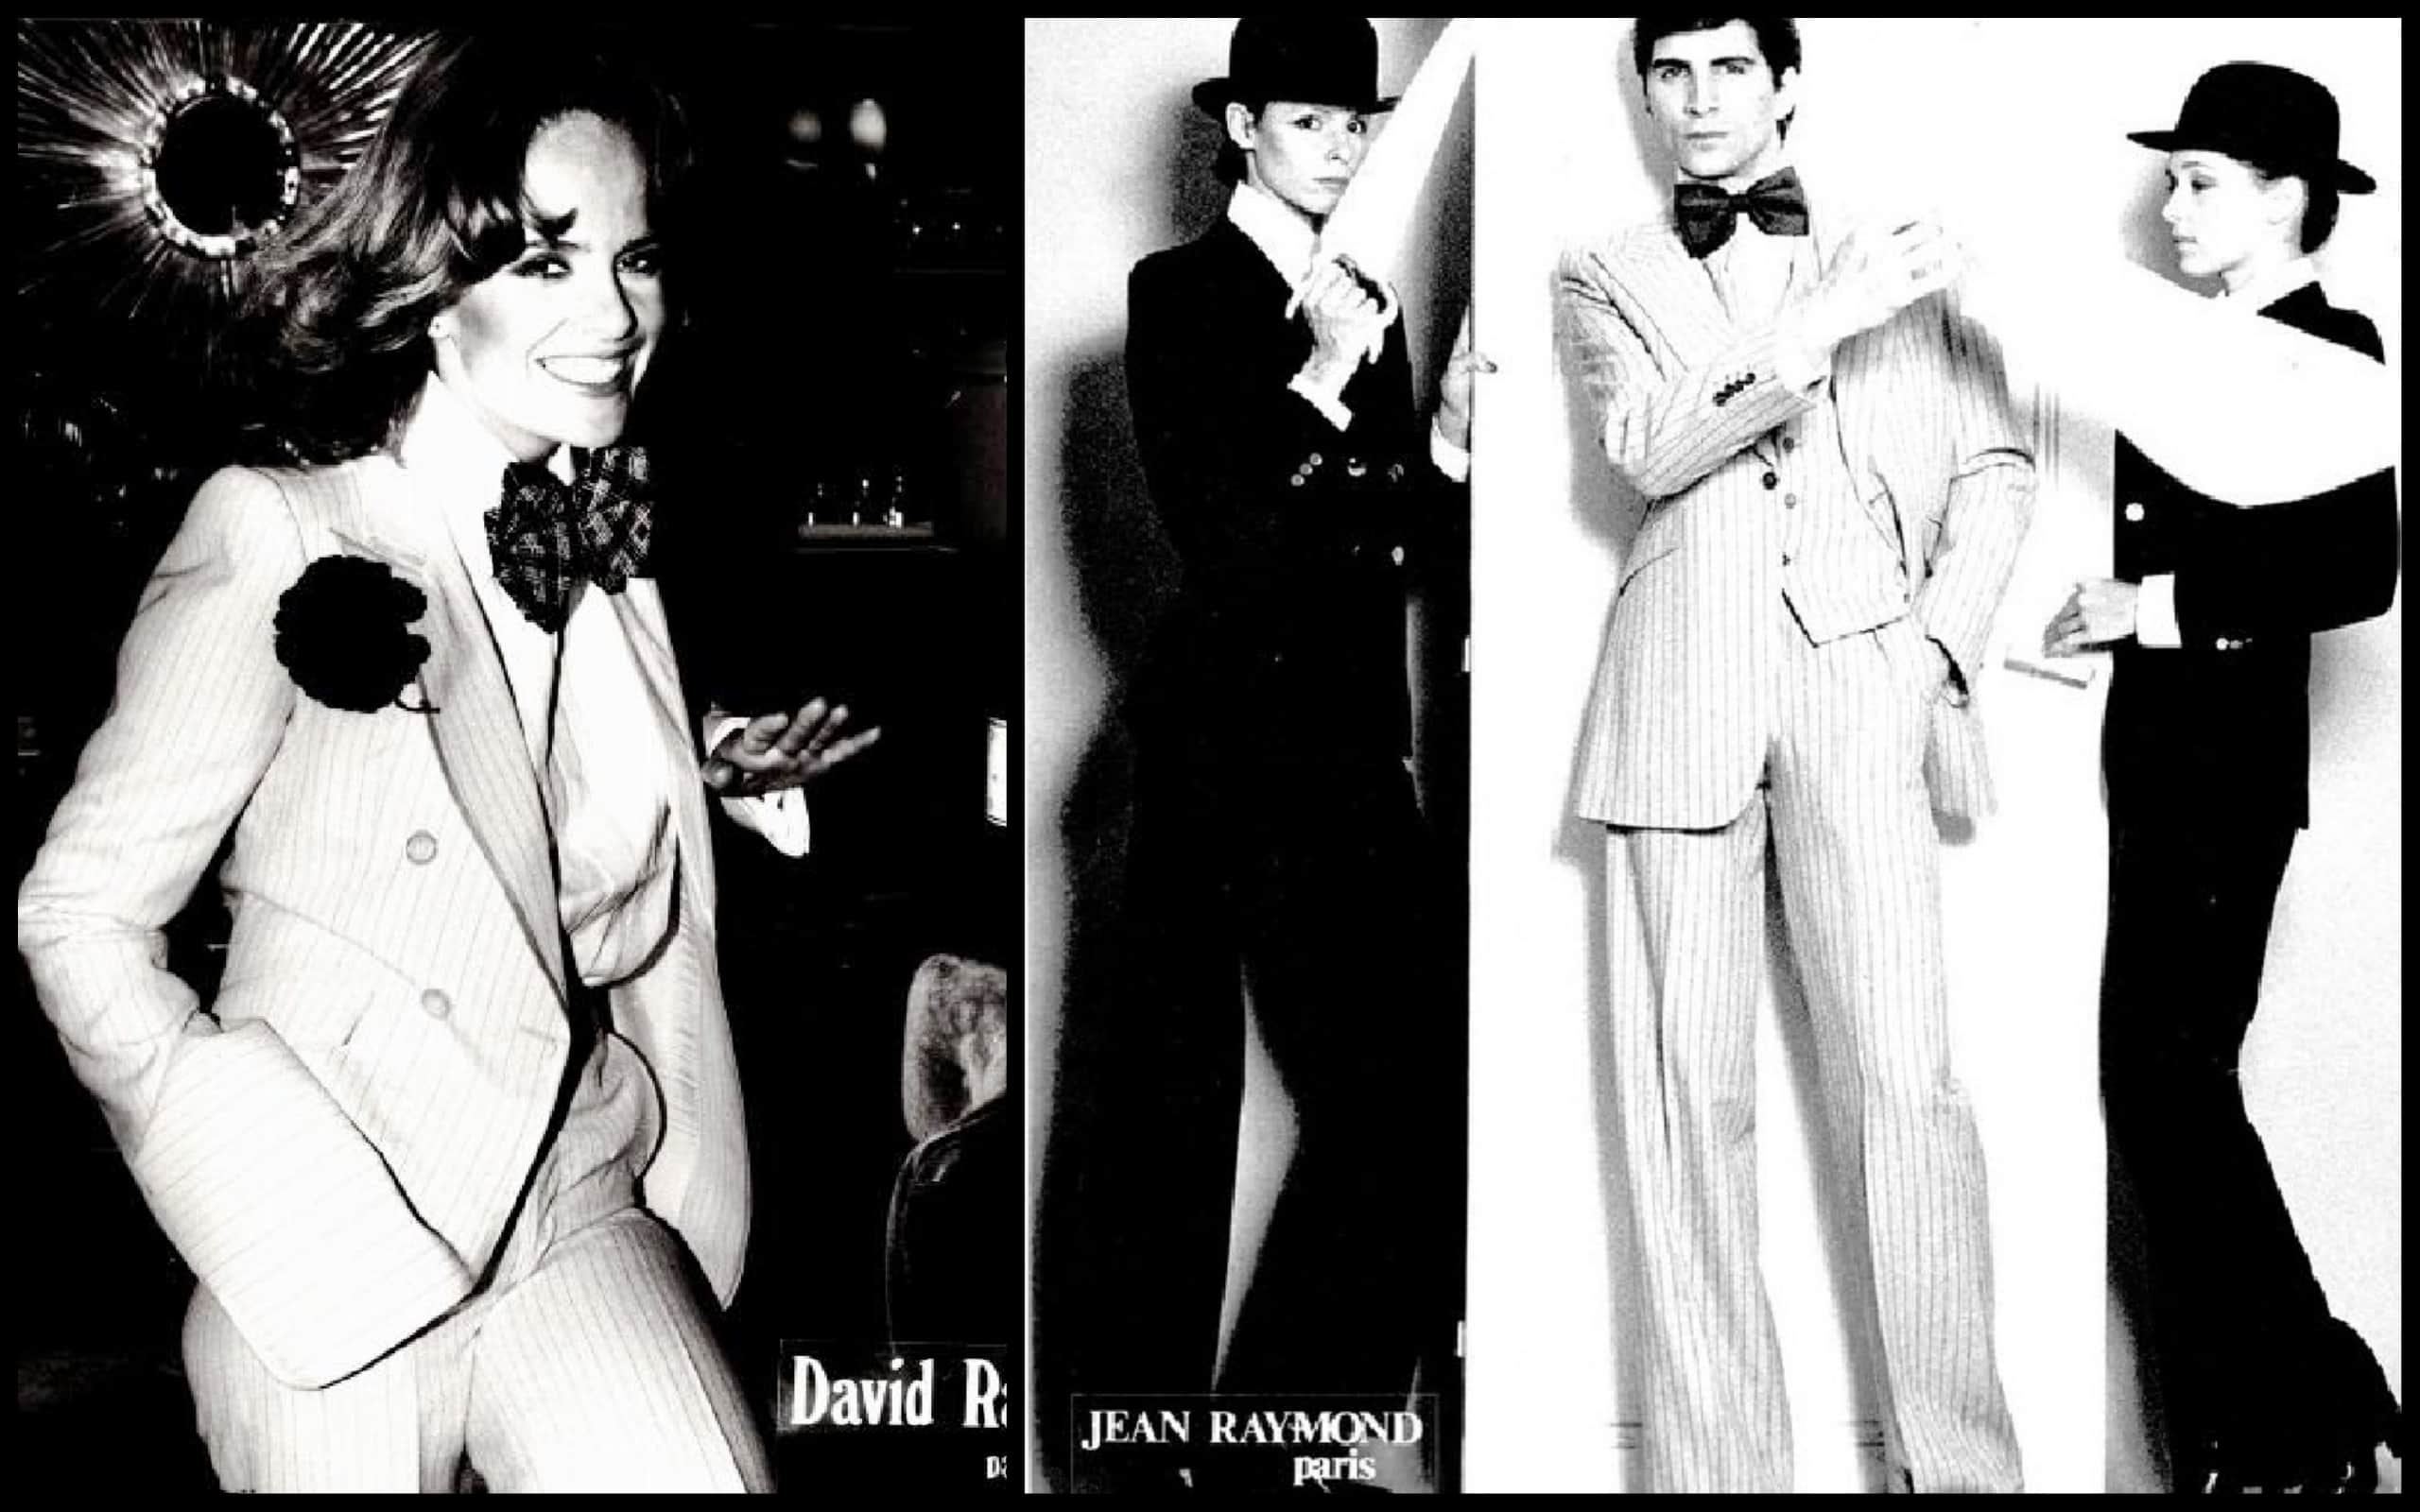 David-Ray-Smoking-and-costume-for-women-by-Tailor-JEAN-RAYMOND